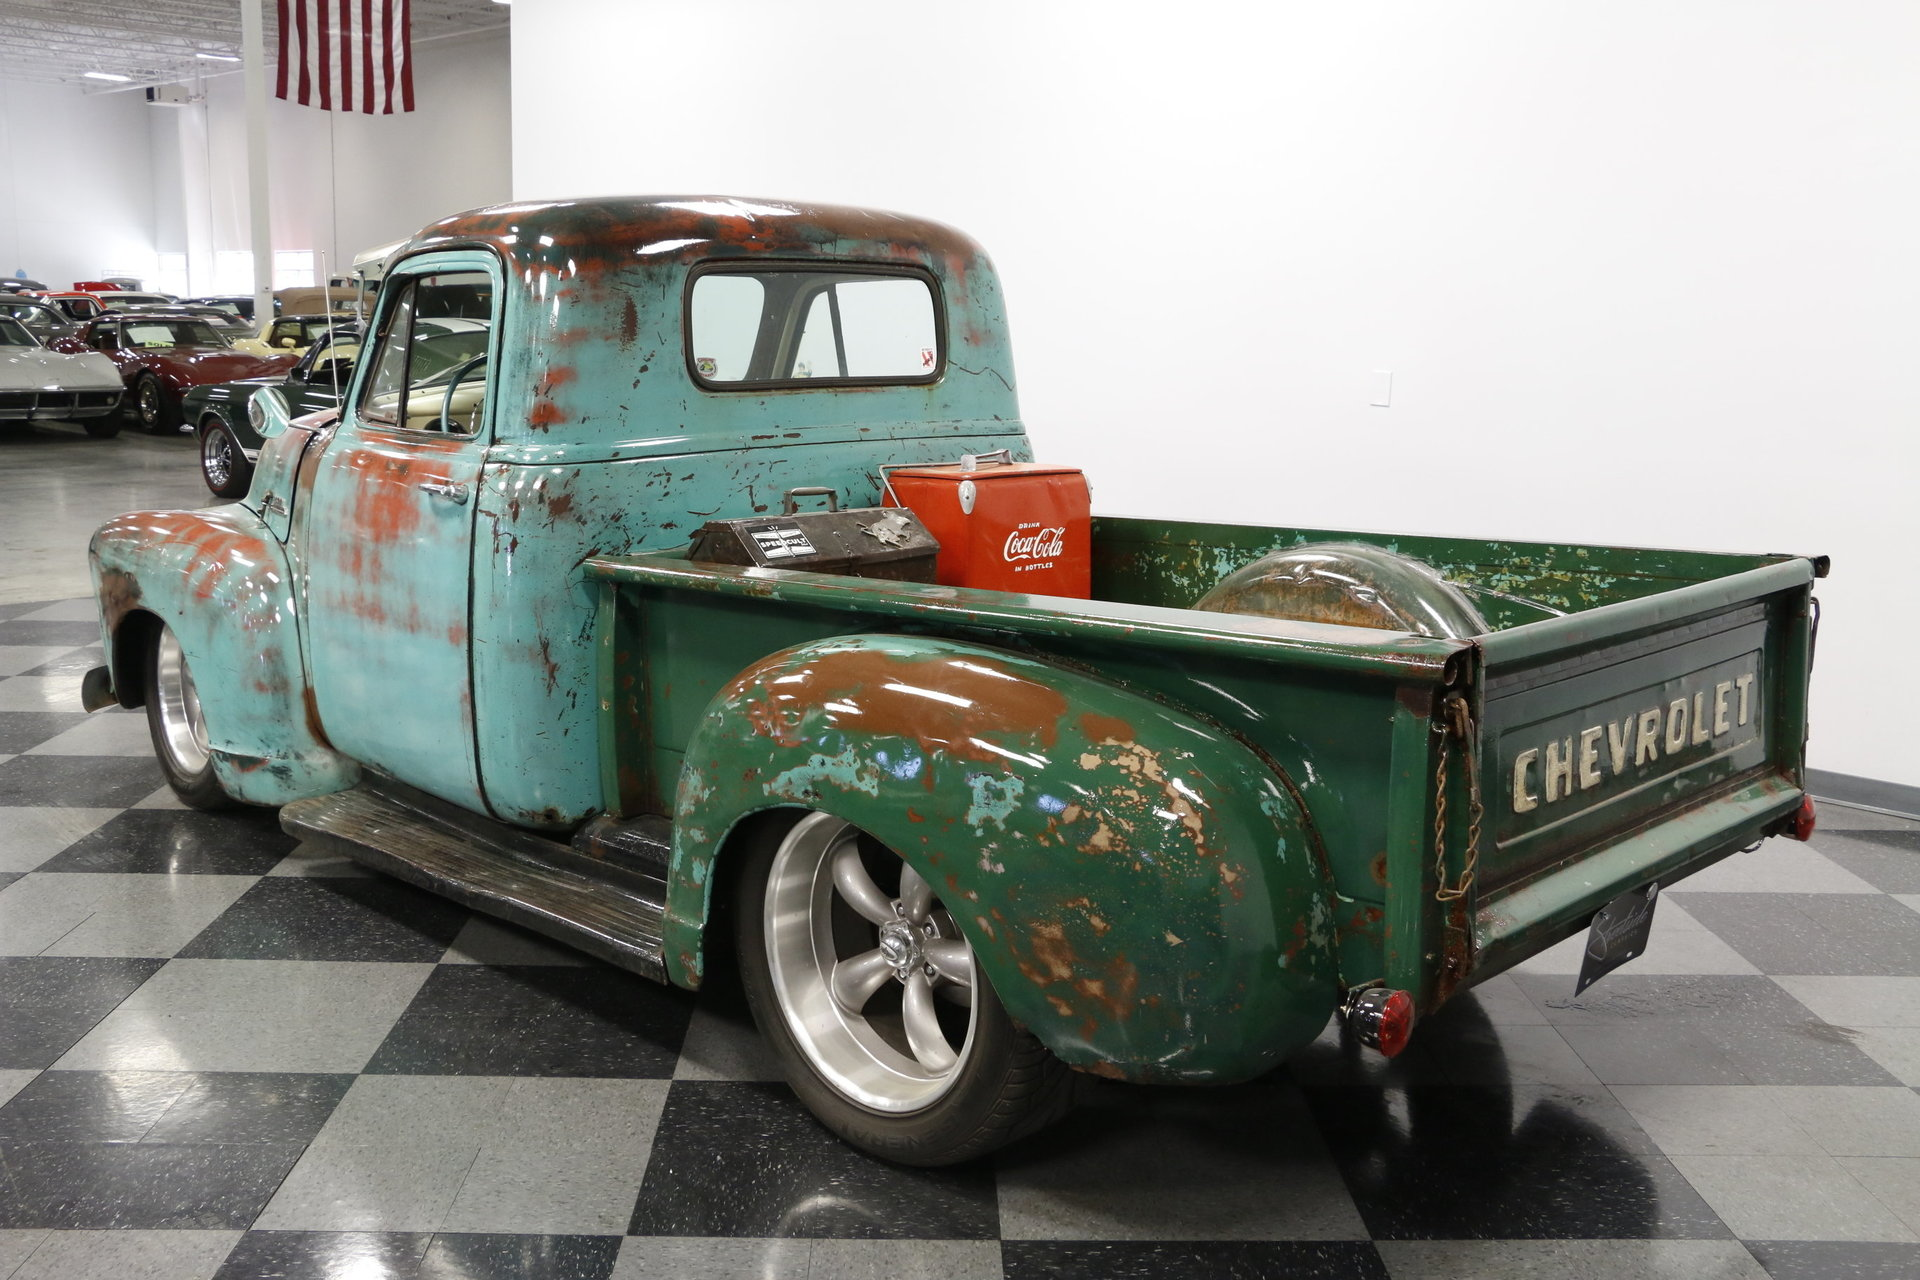 1954 Chevrolet 3100 Streetside Classics The Nations Trusted Pickup Truck View 360